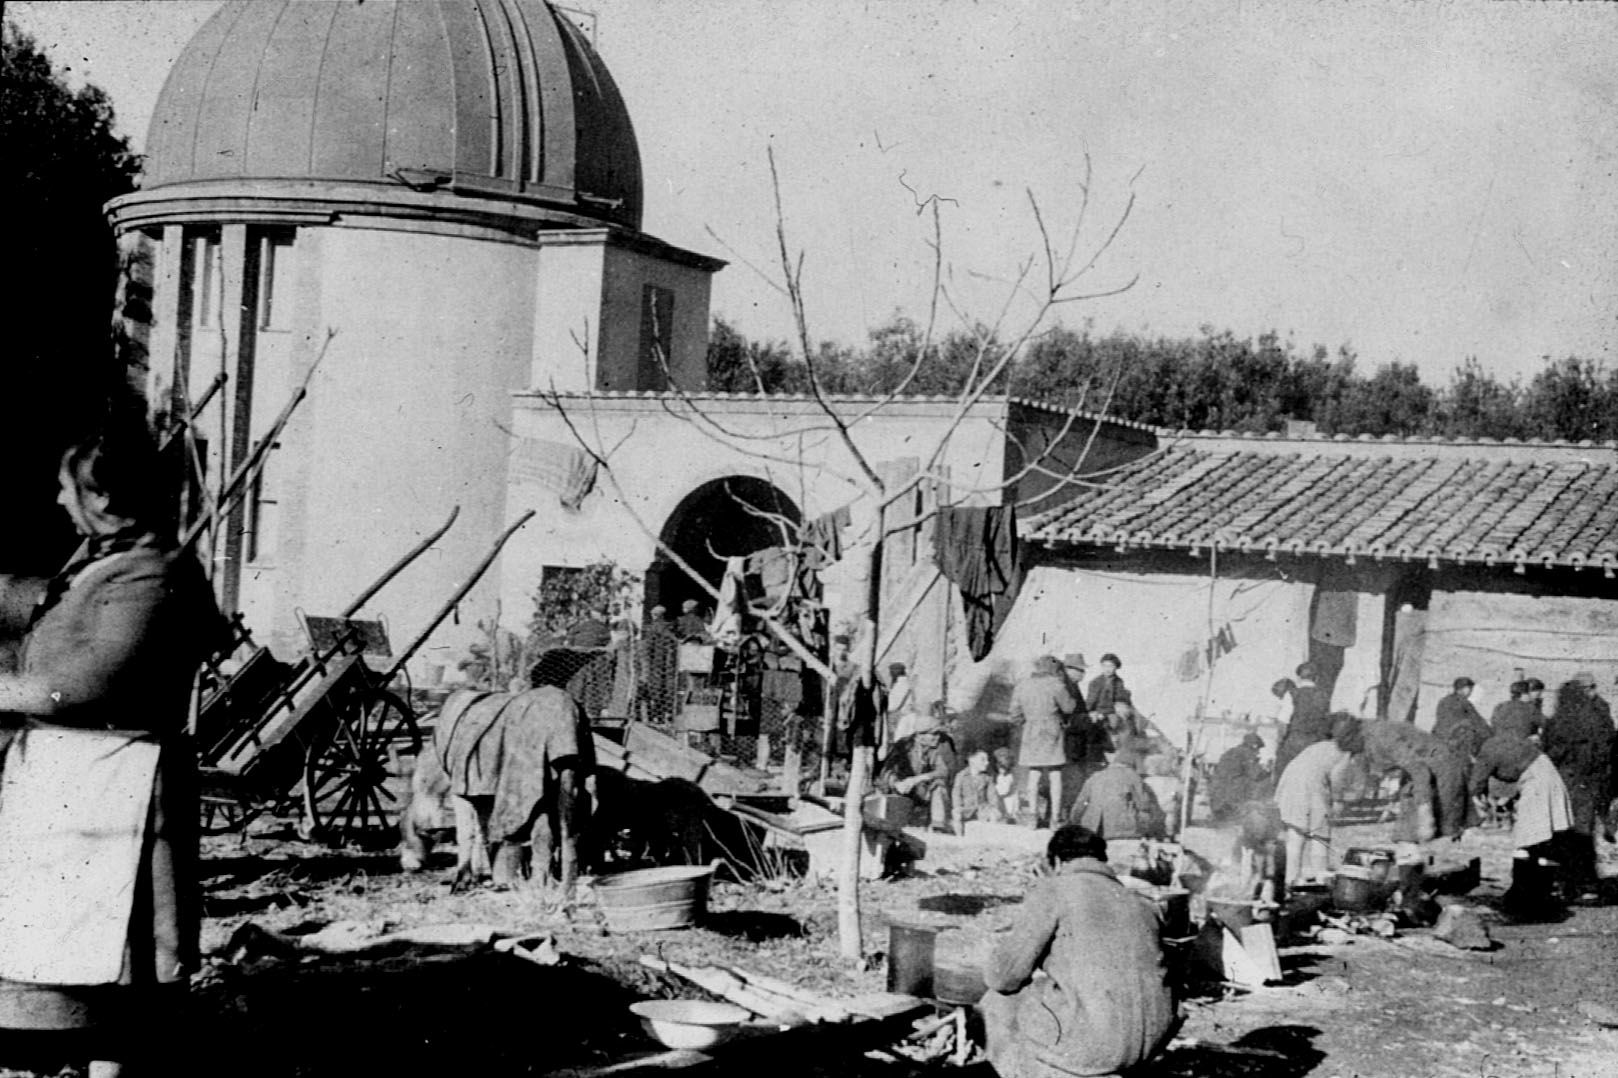 War Refugees Housed in the Papal Gardens